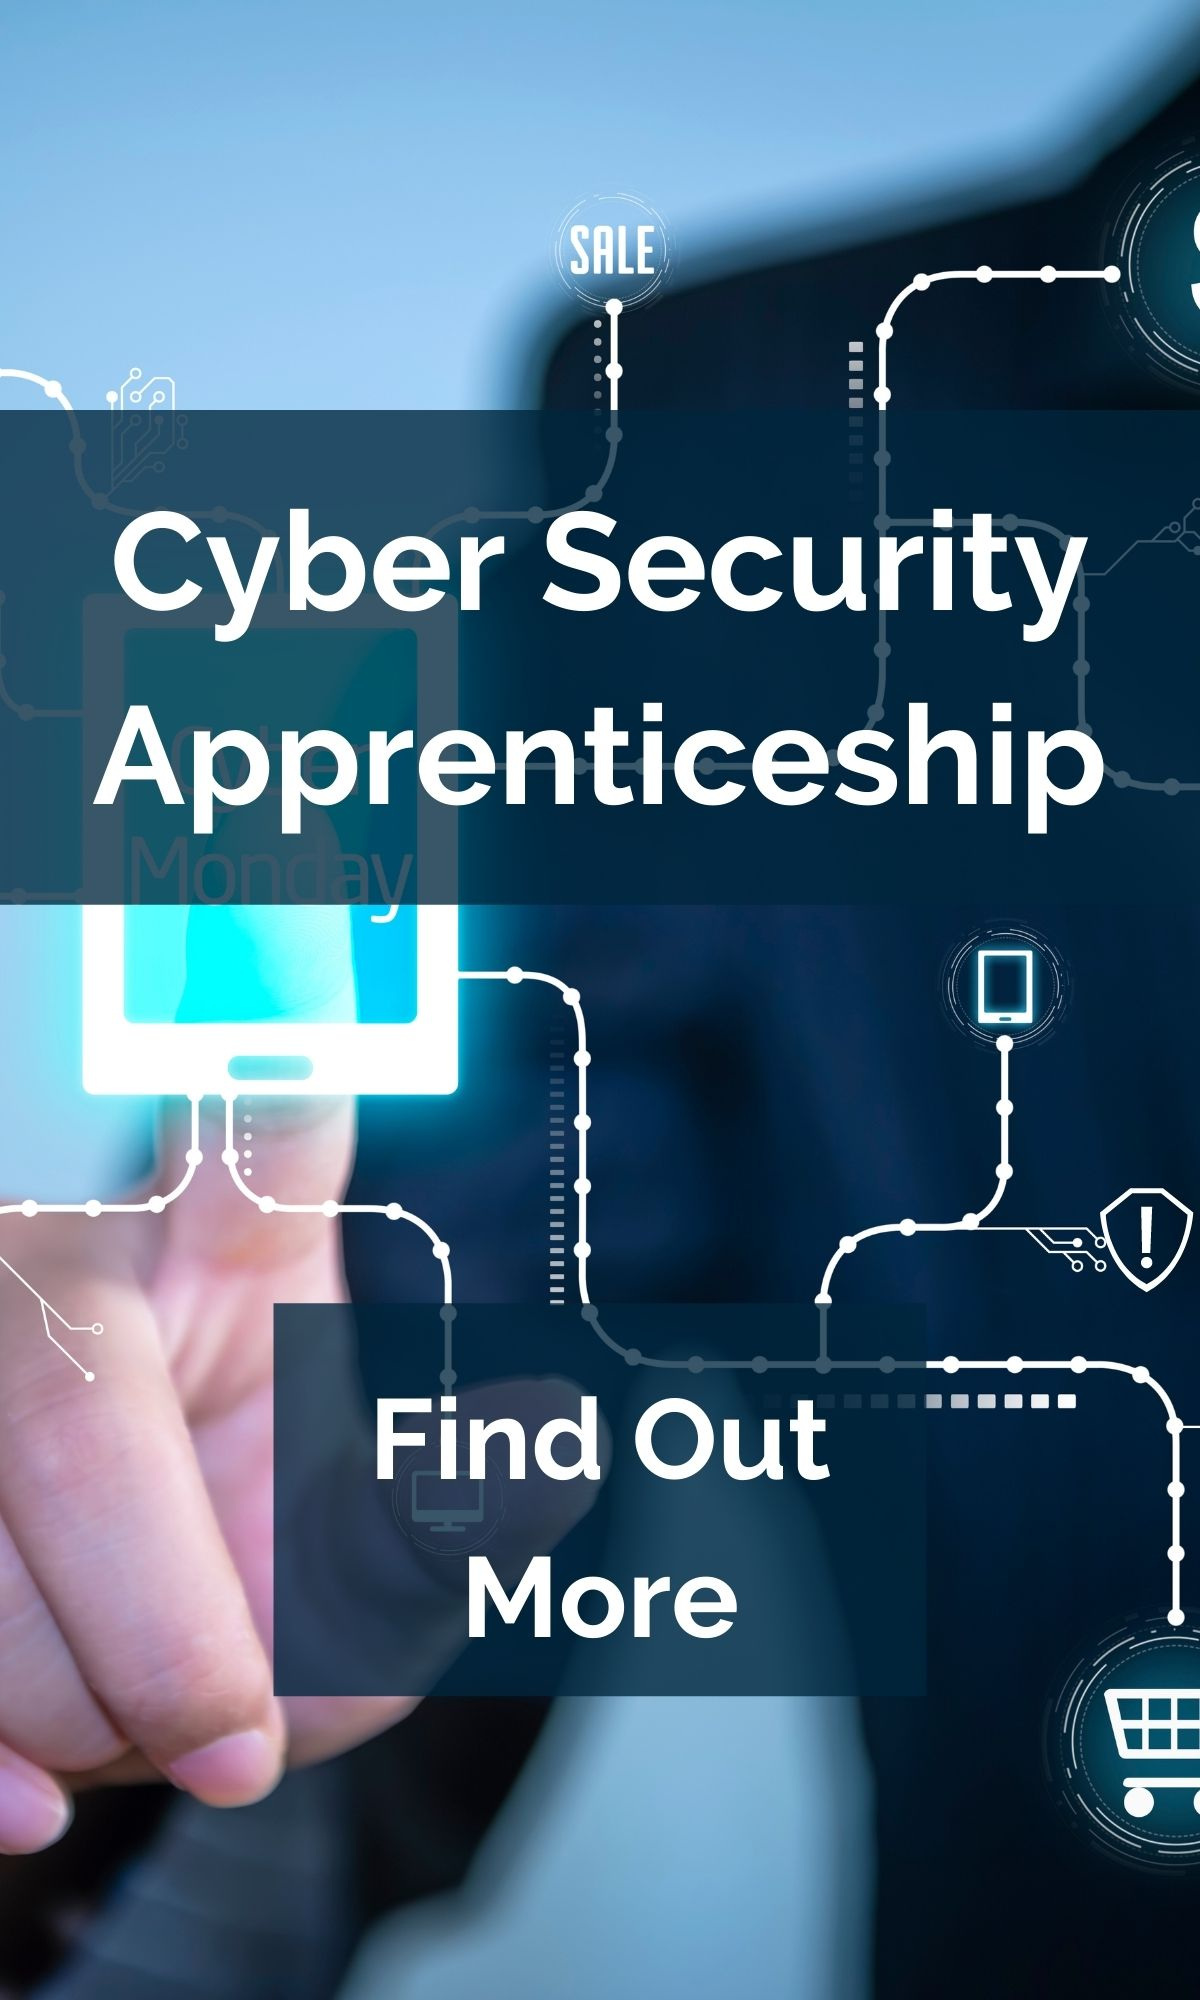 cyber security - find out more